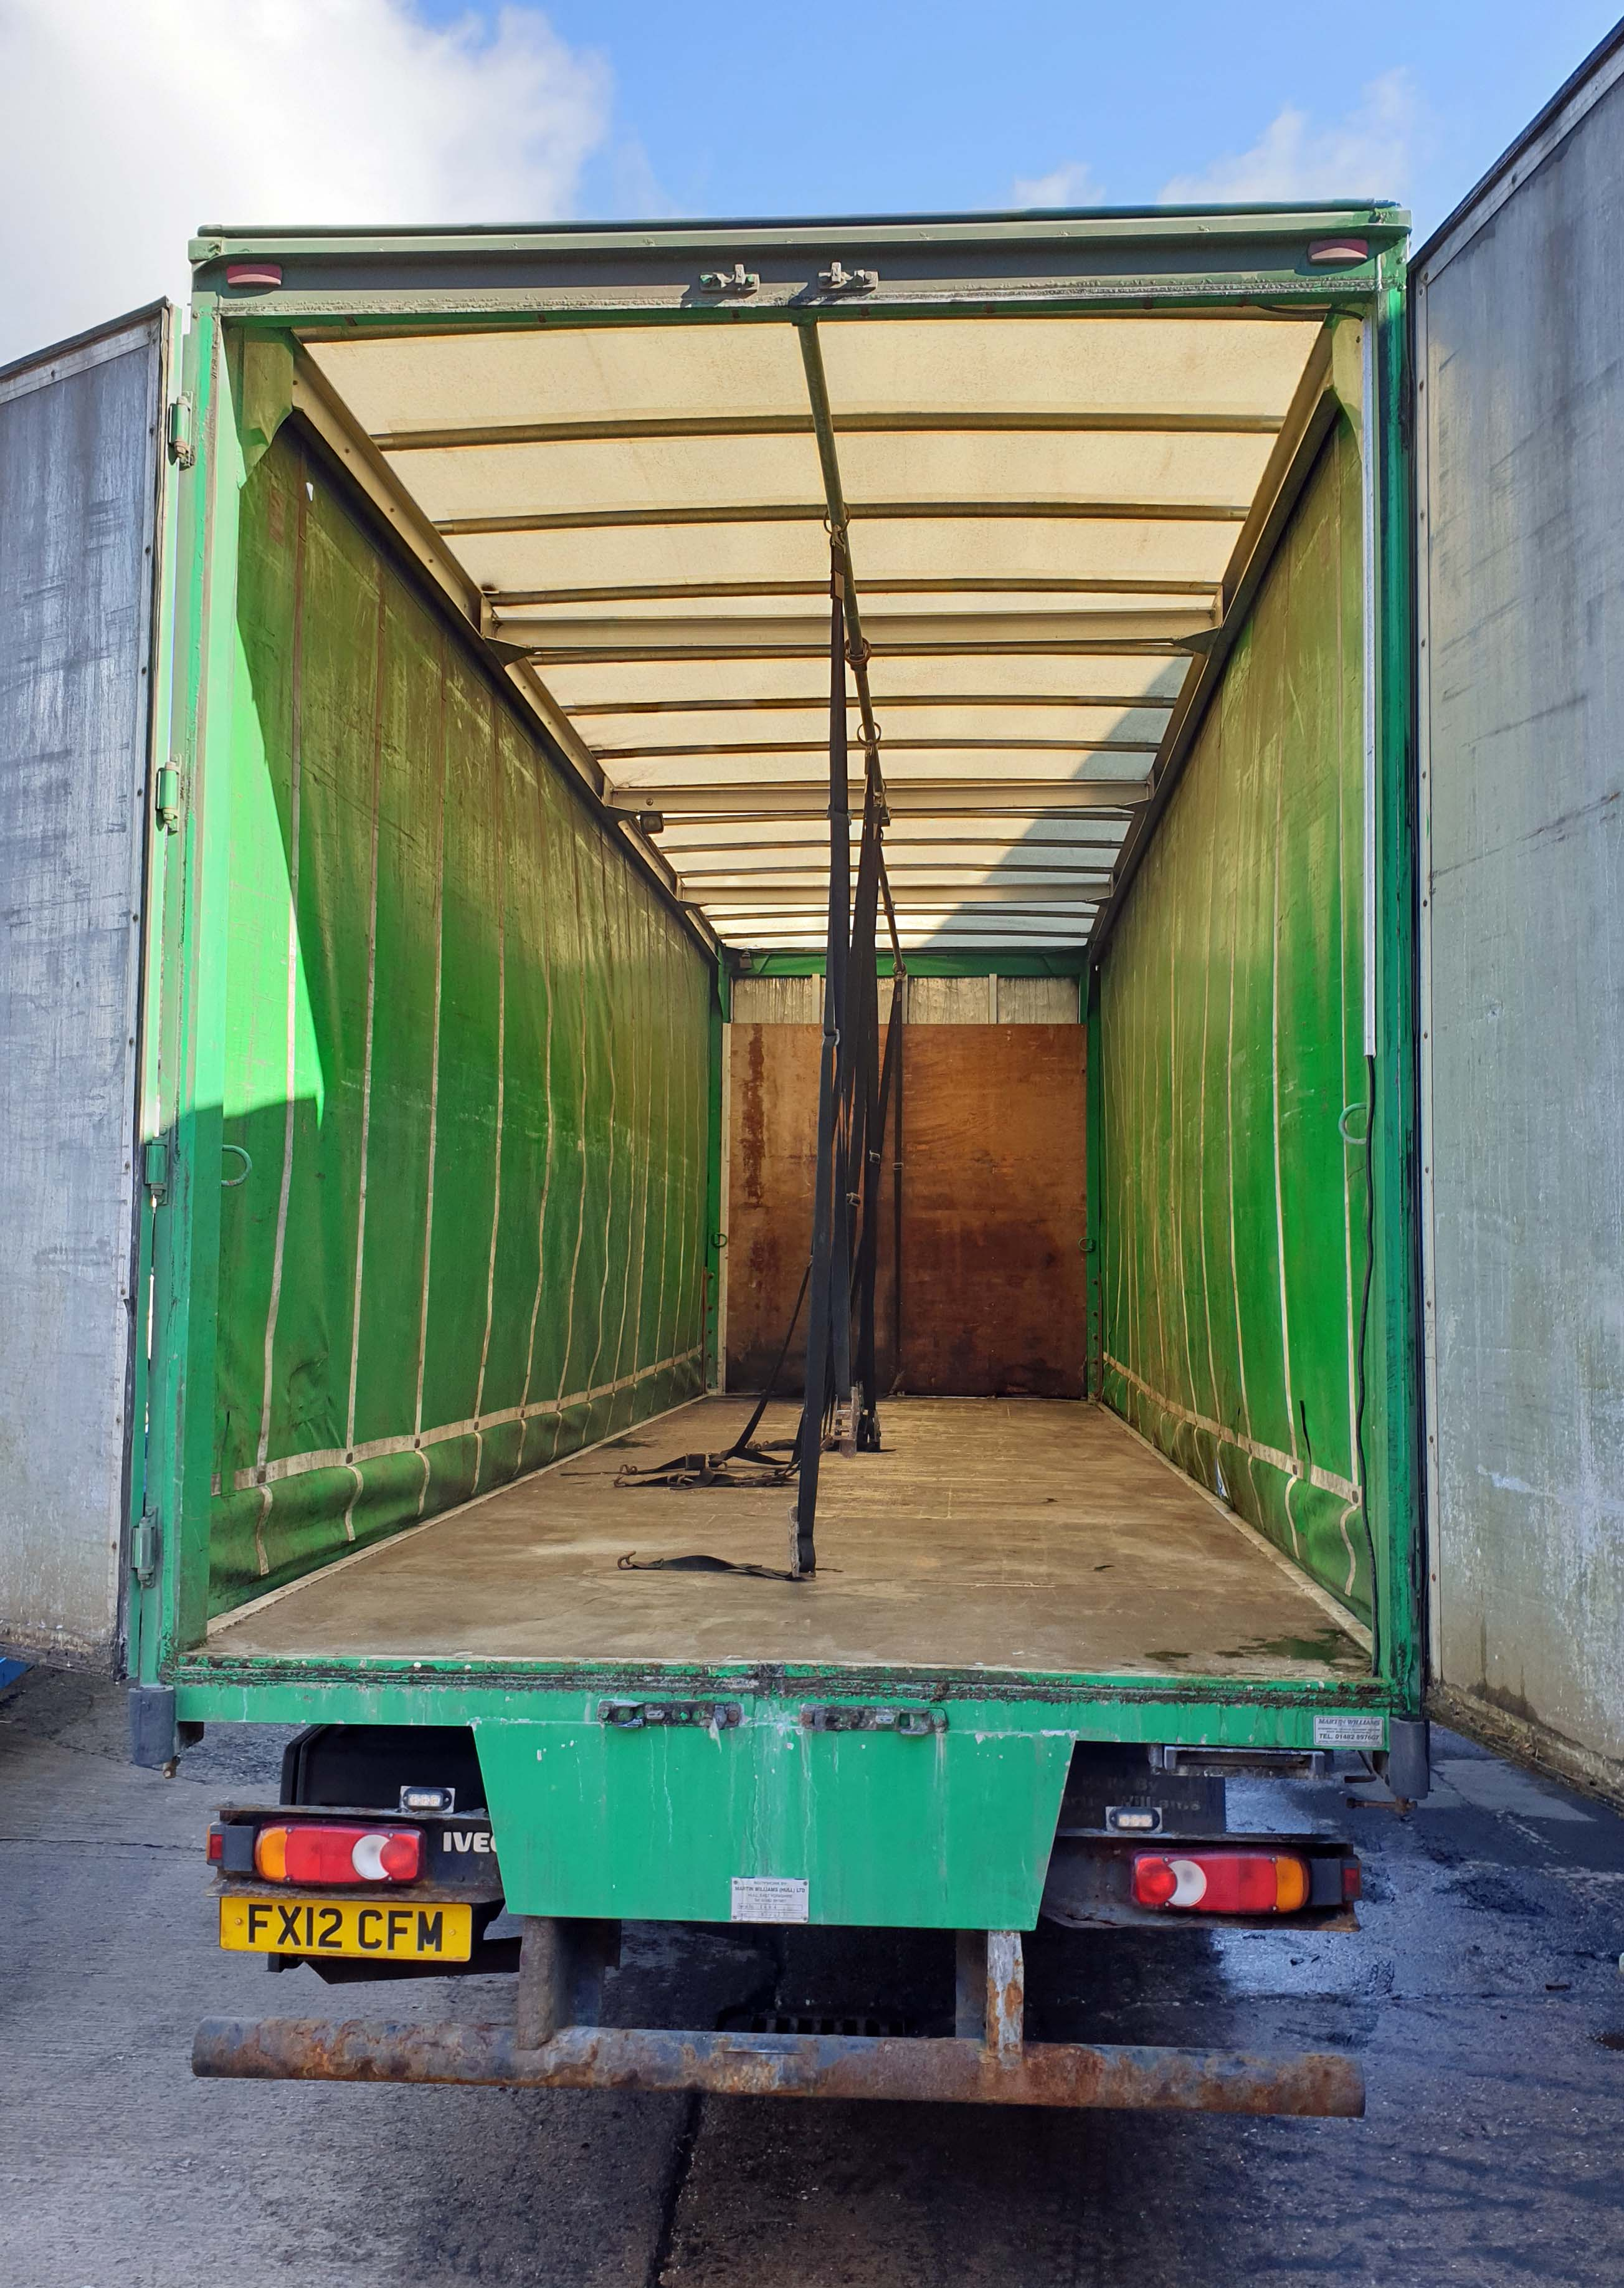 An IVECO Eurocargo ML180E25 5880cc Euro5 18-Tonne 4x2 Curtainside Truck, Registration No. FX12 - Image 4 of 9